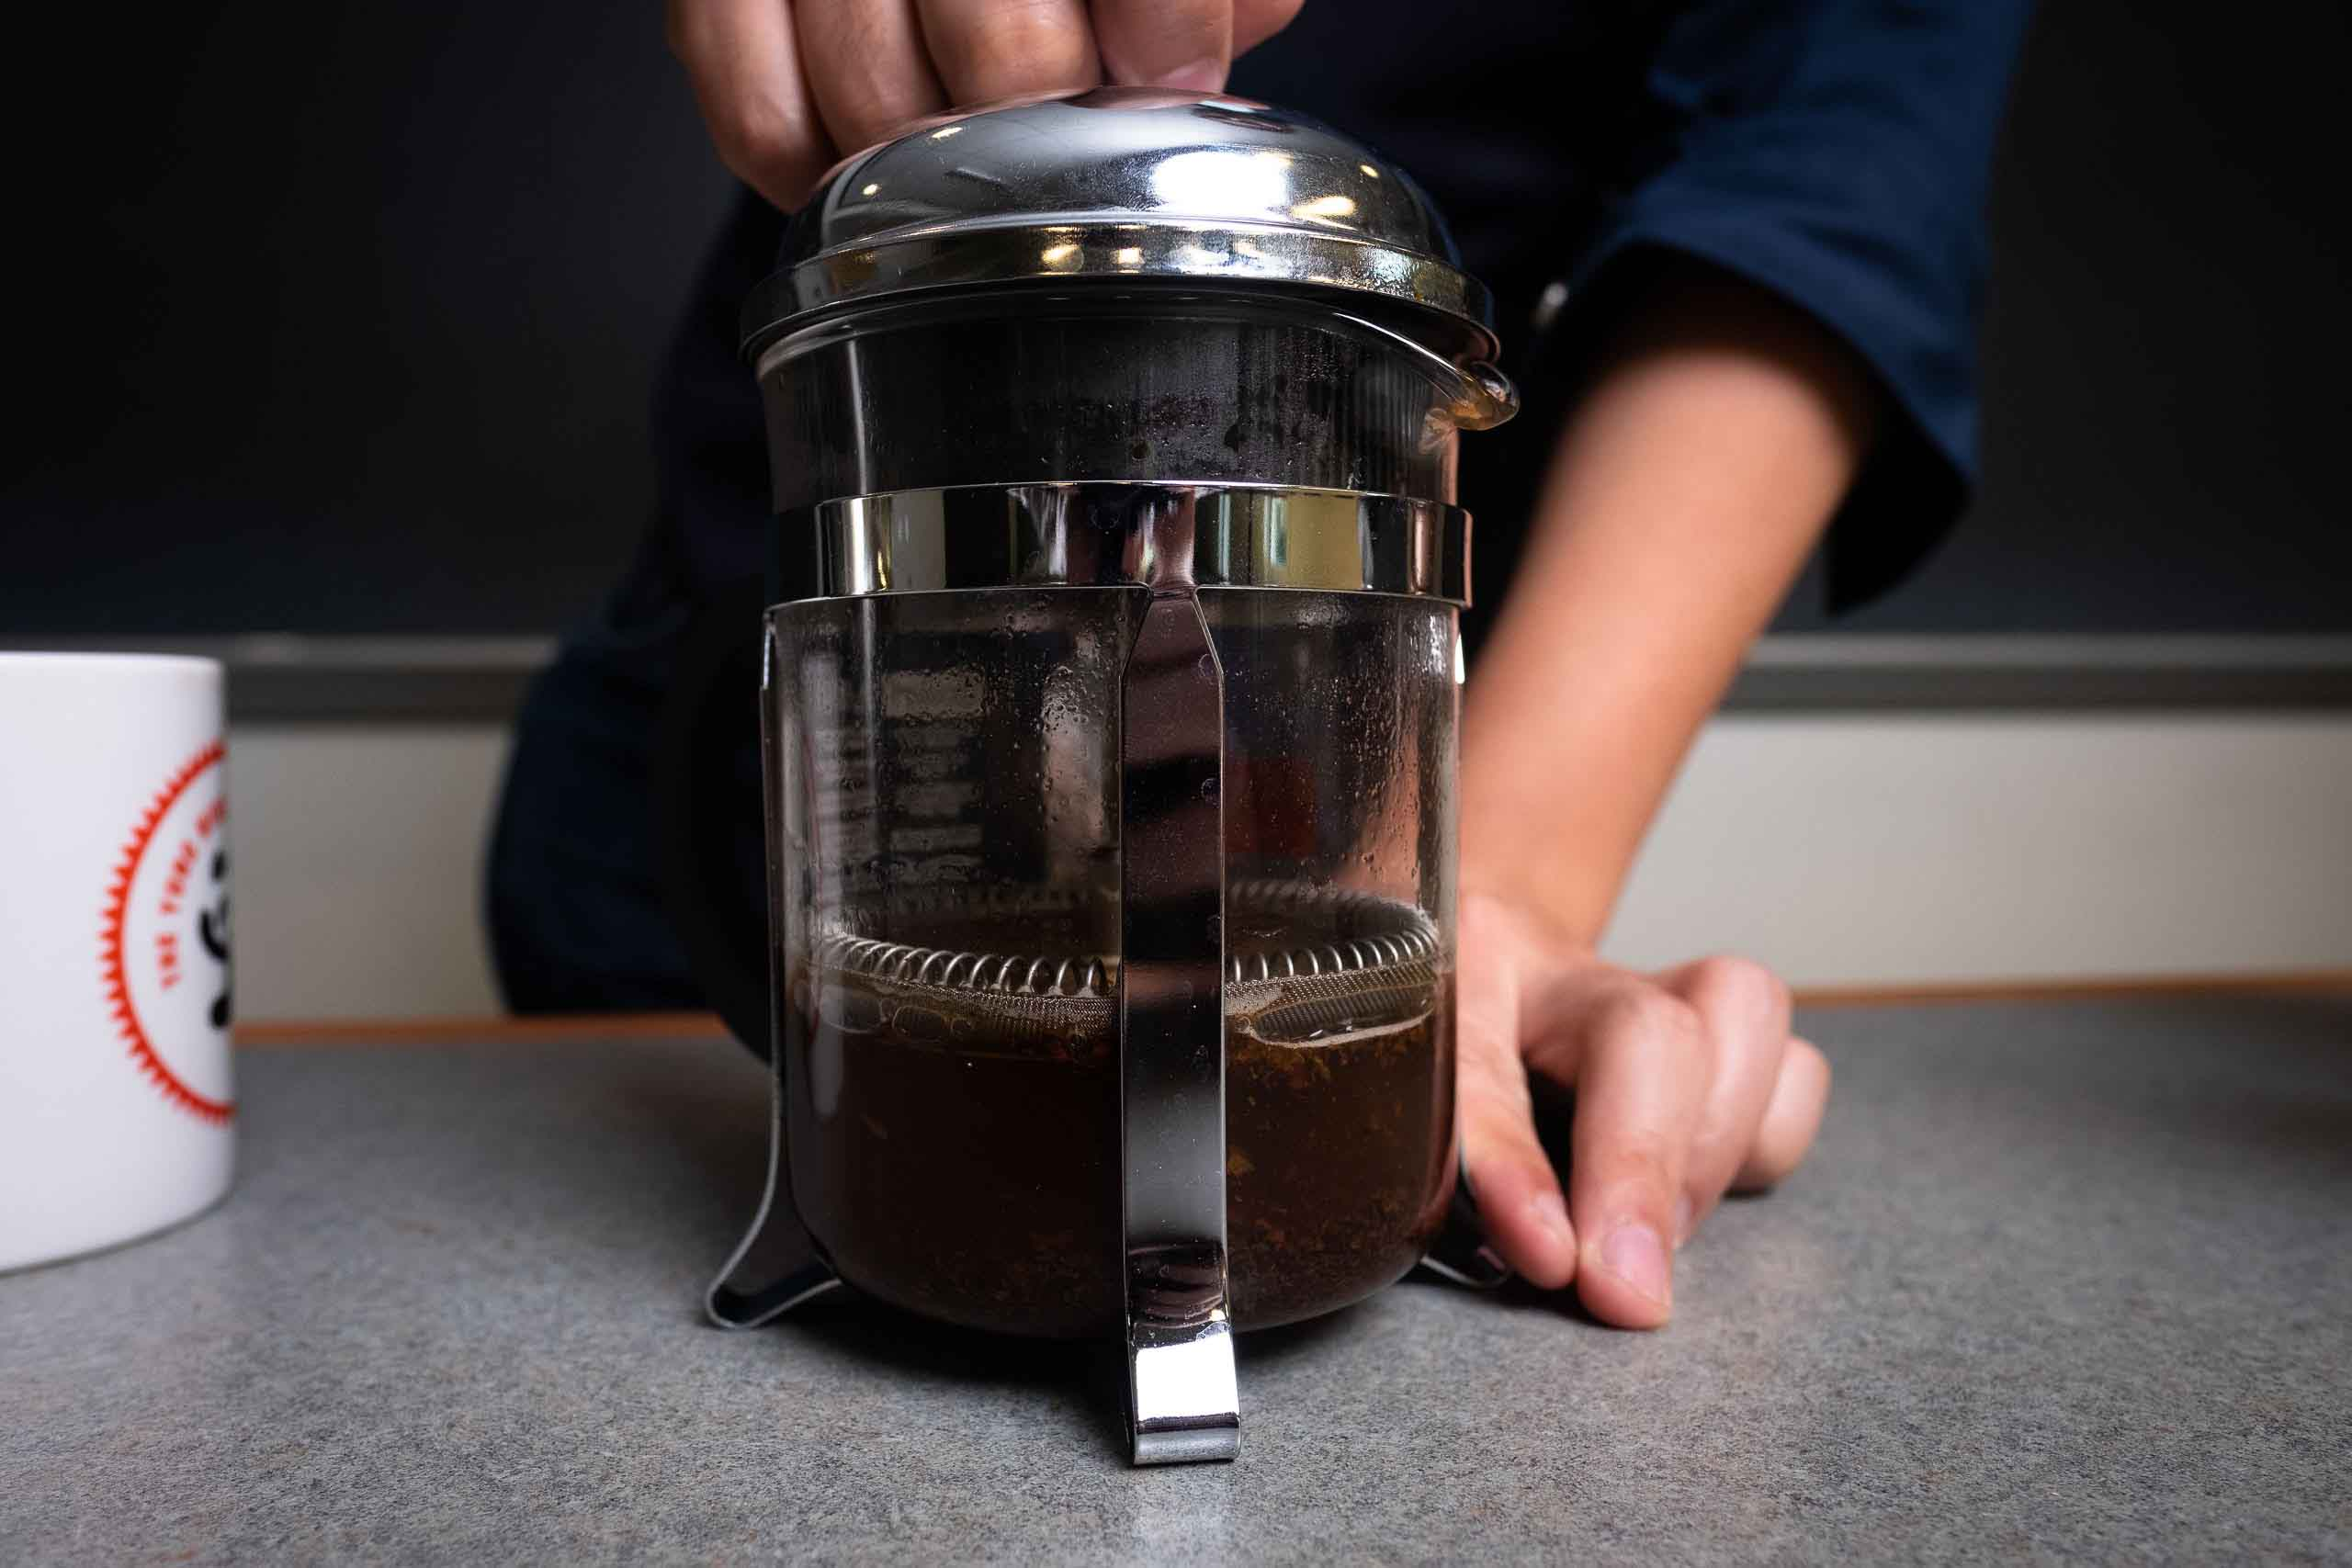 A French press with coffee inside